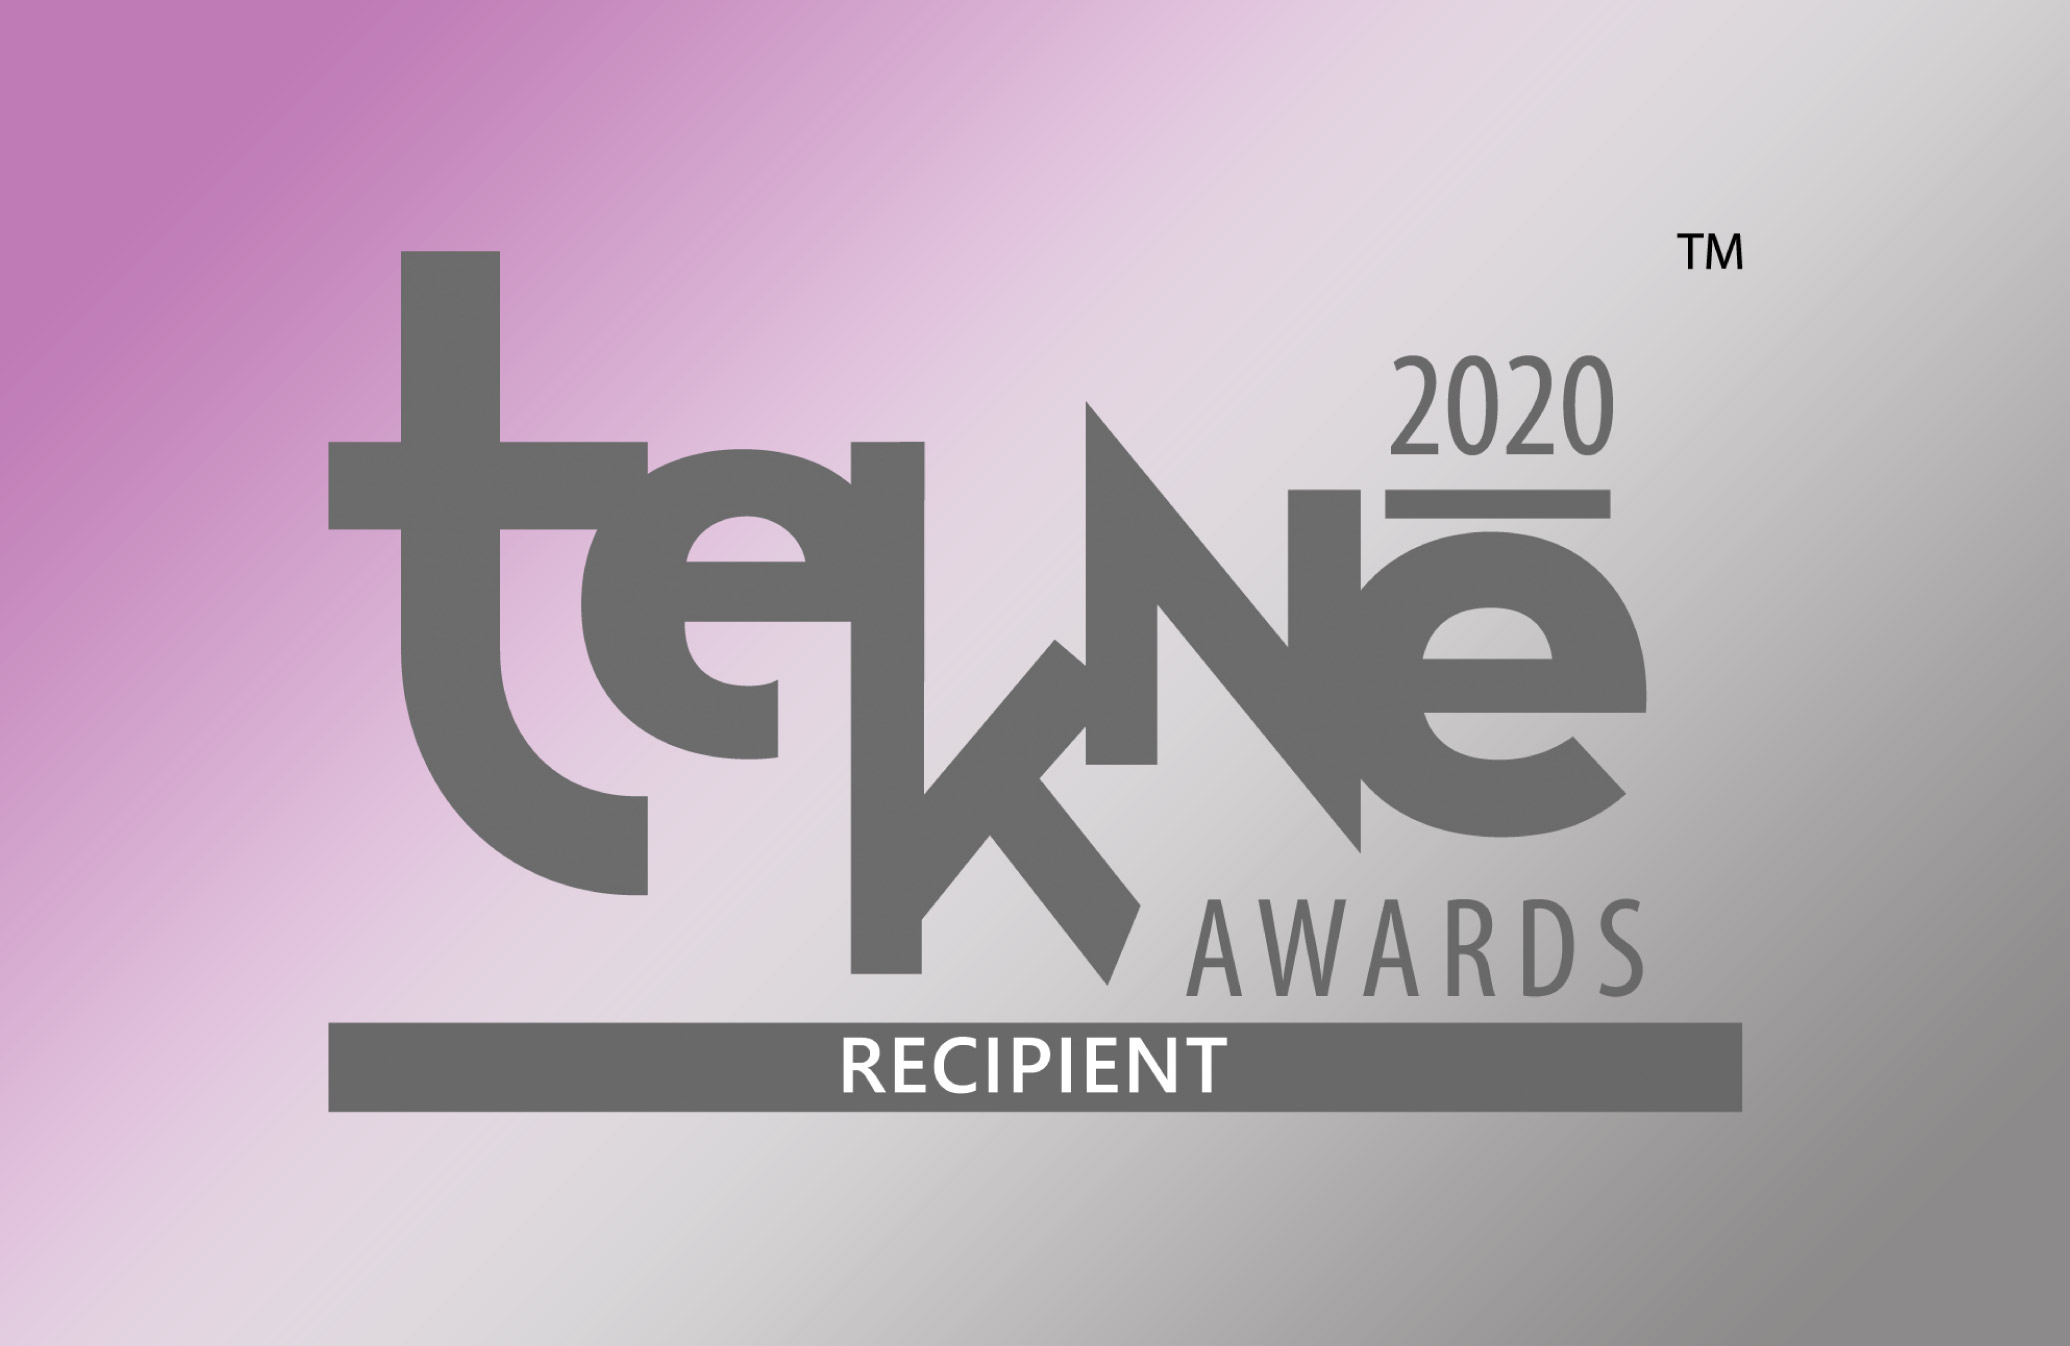 2020 Tekne Award Recipient